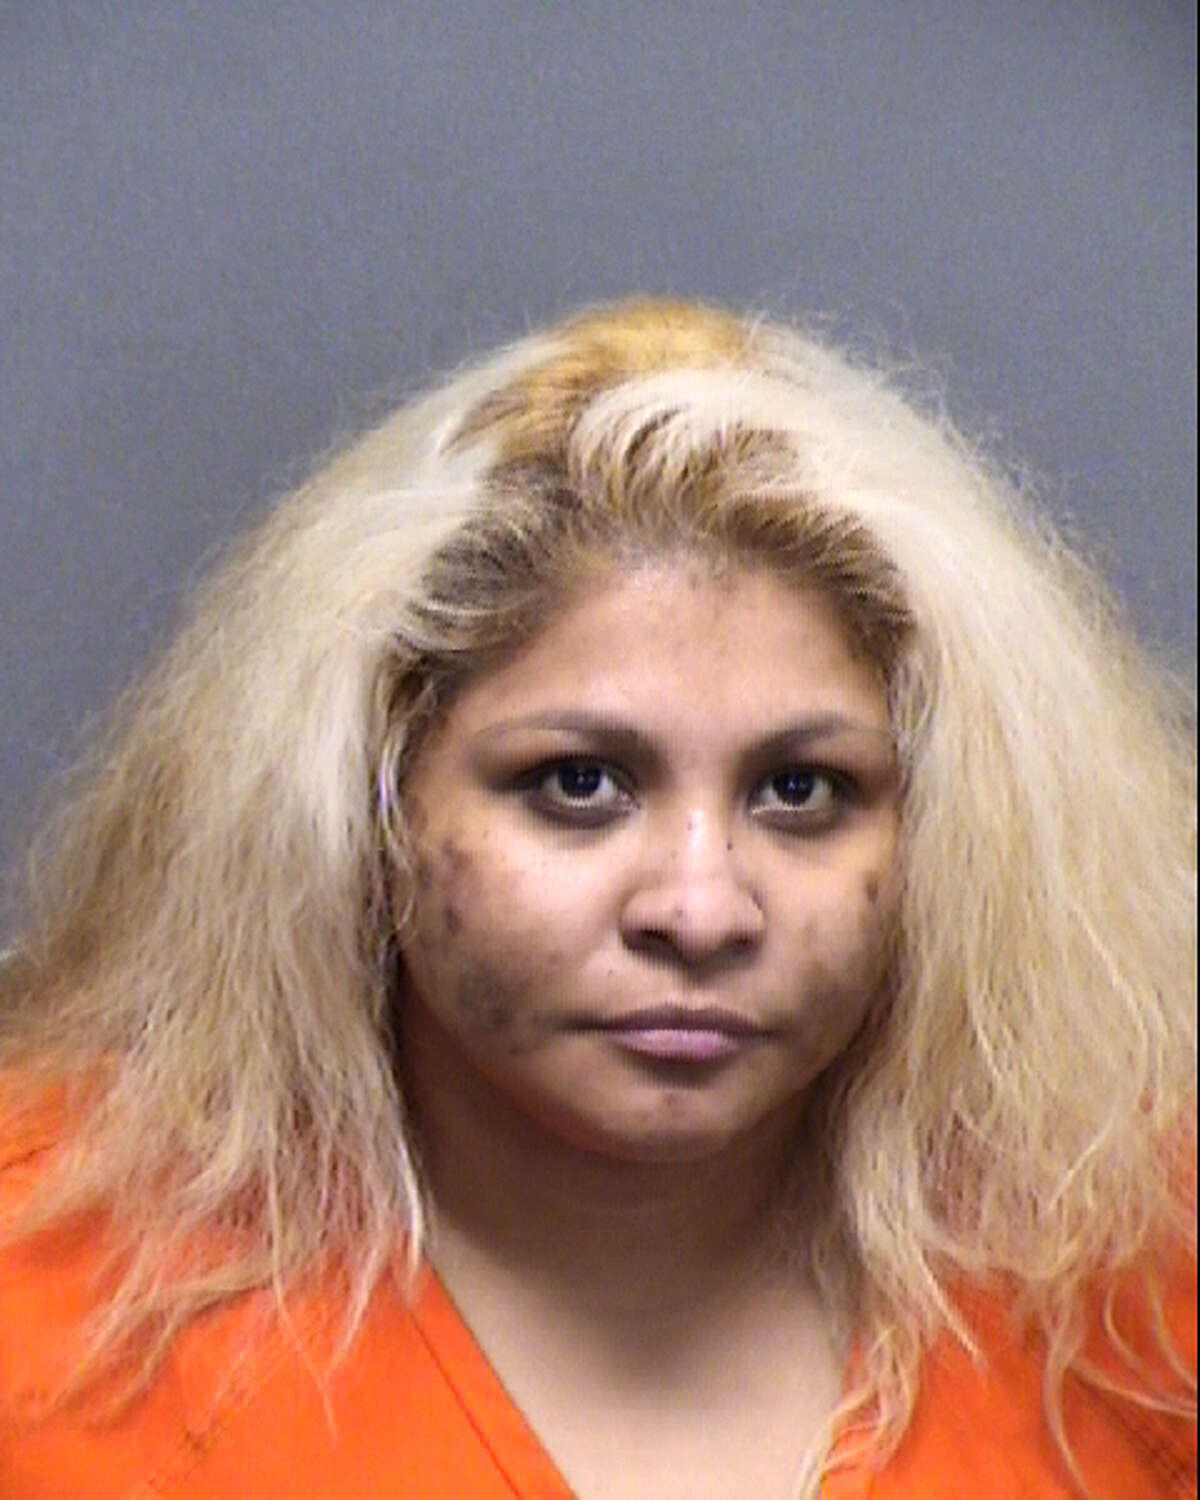 Priscilla Caballero, 35, was charged with murder.